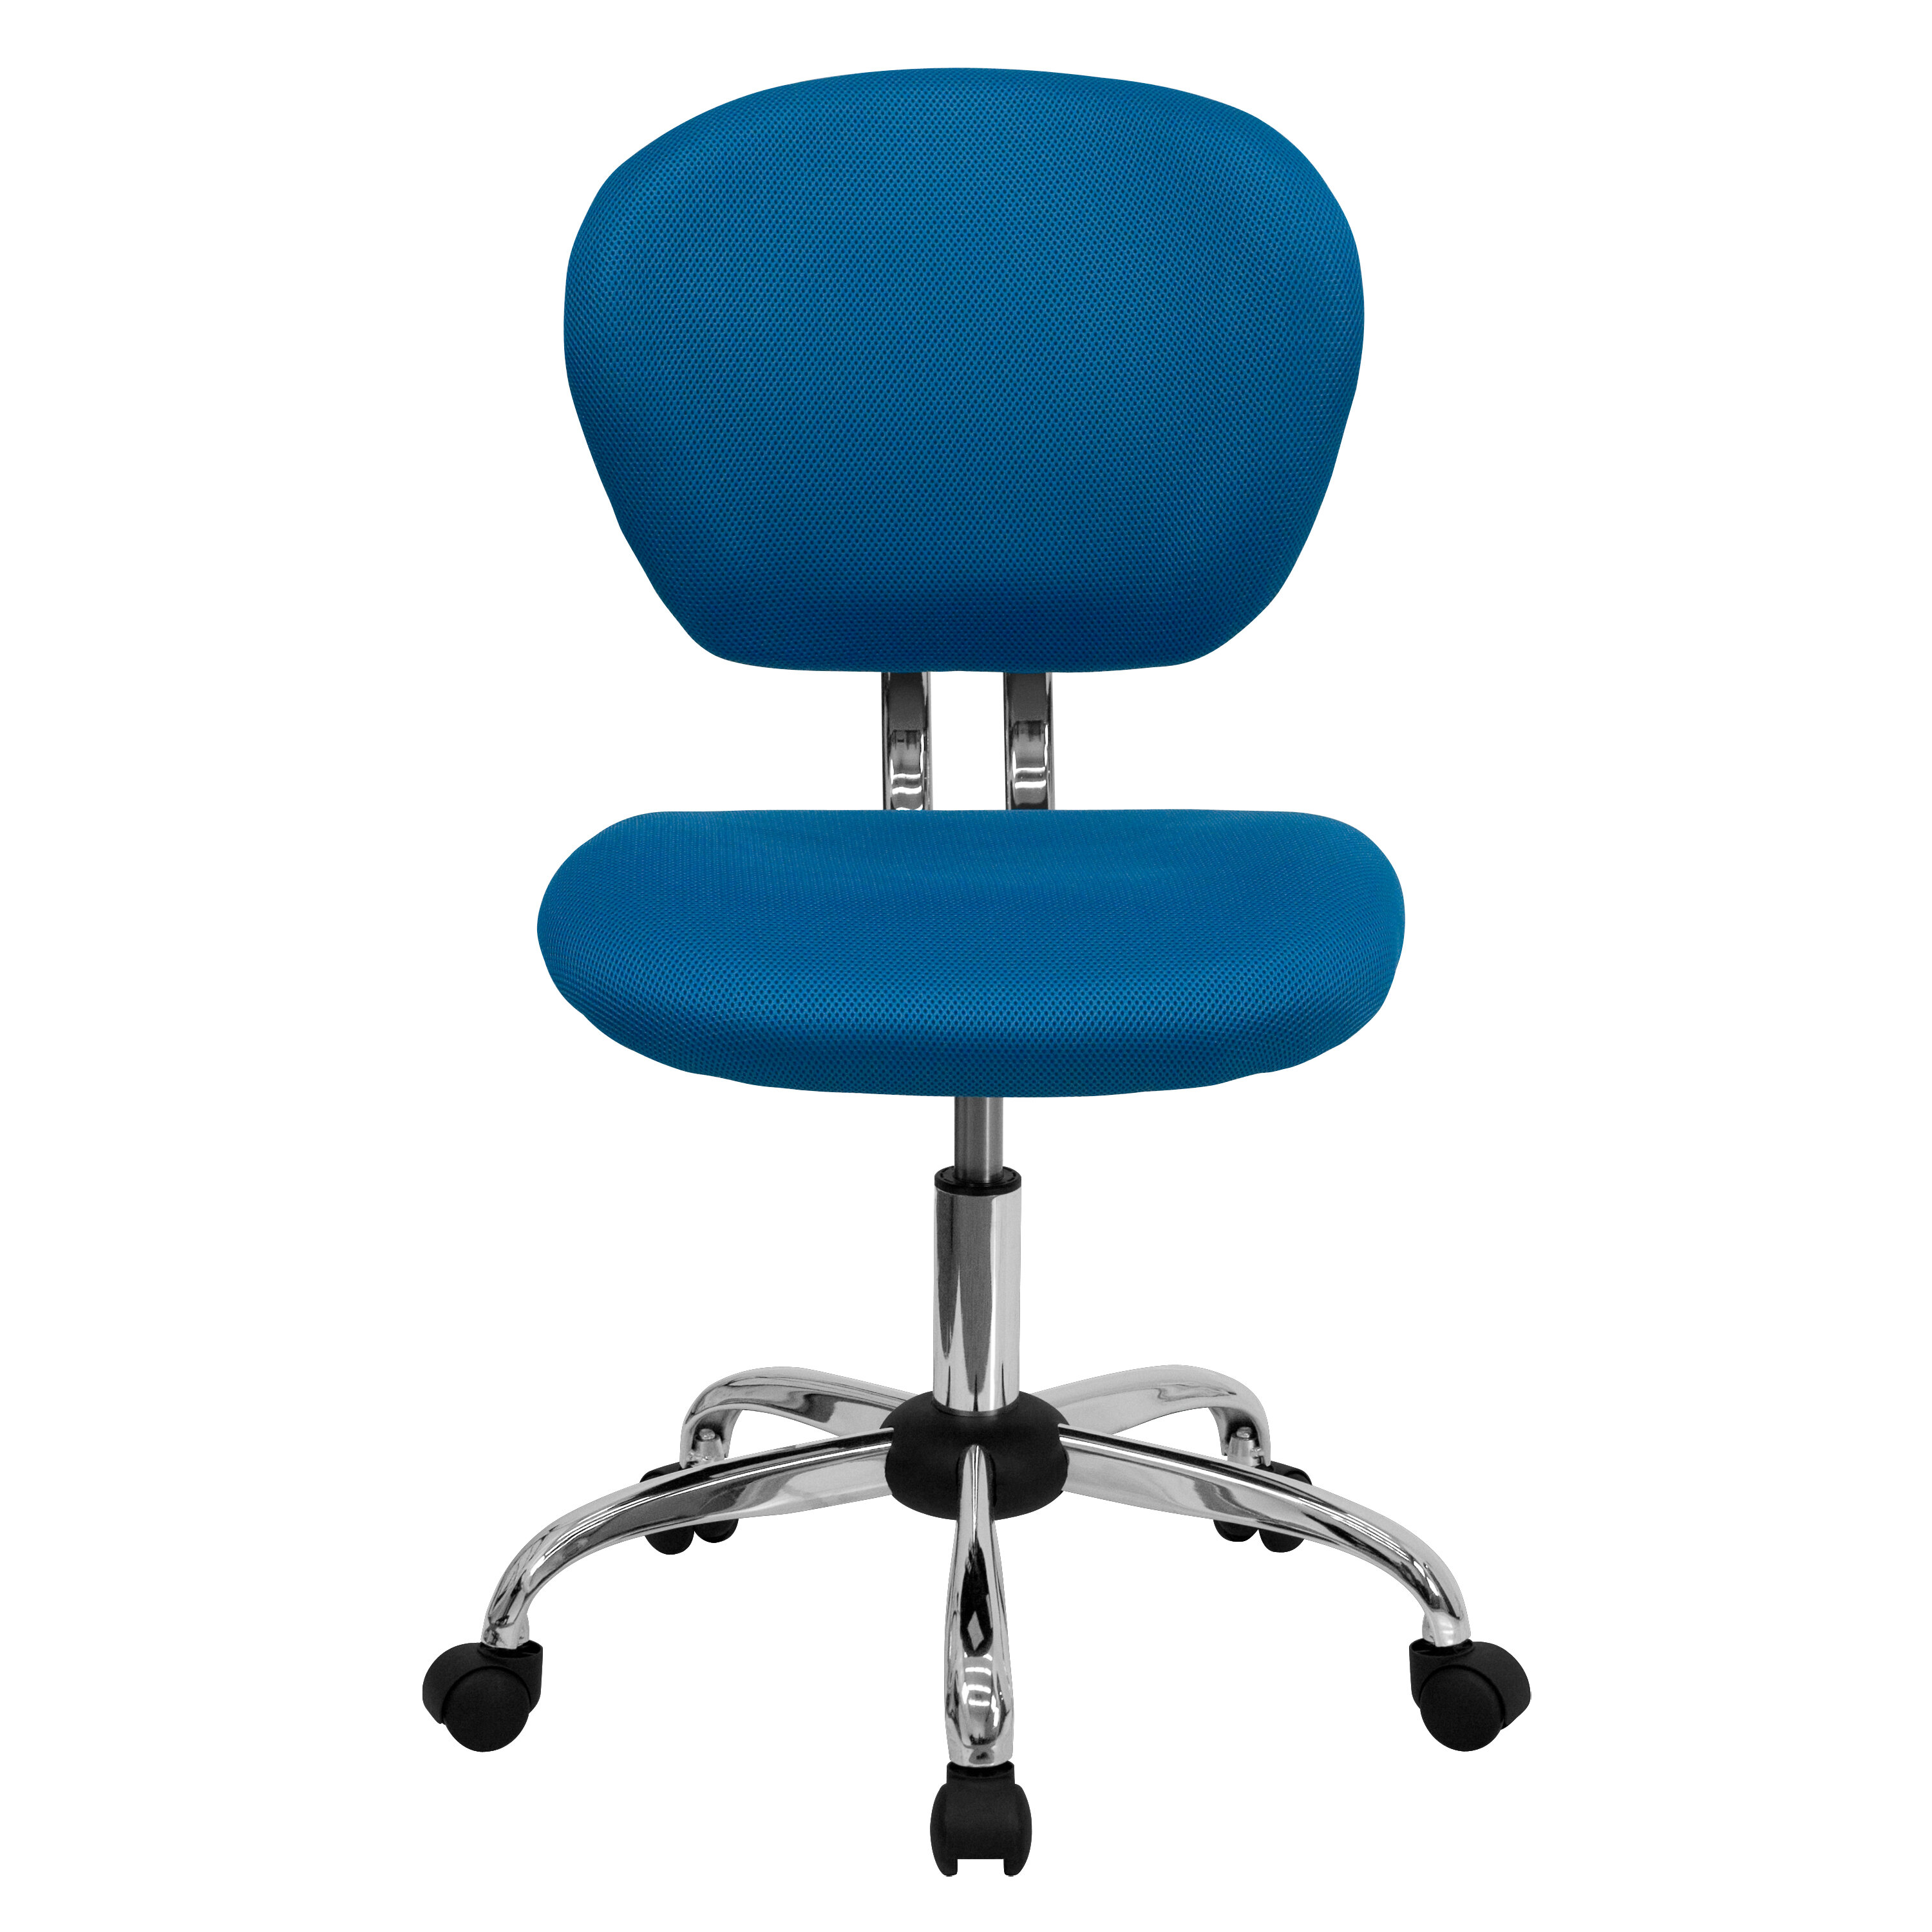 Swell Wayfair Basics Office Chair Gmtry Best Dining Table And Chair Ideas Images Gmtryco